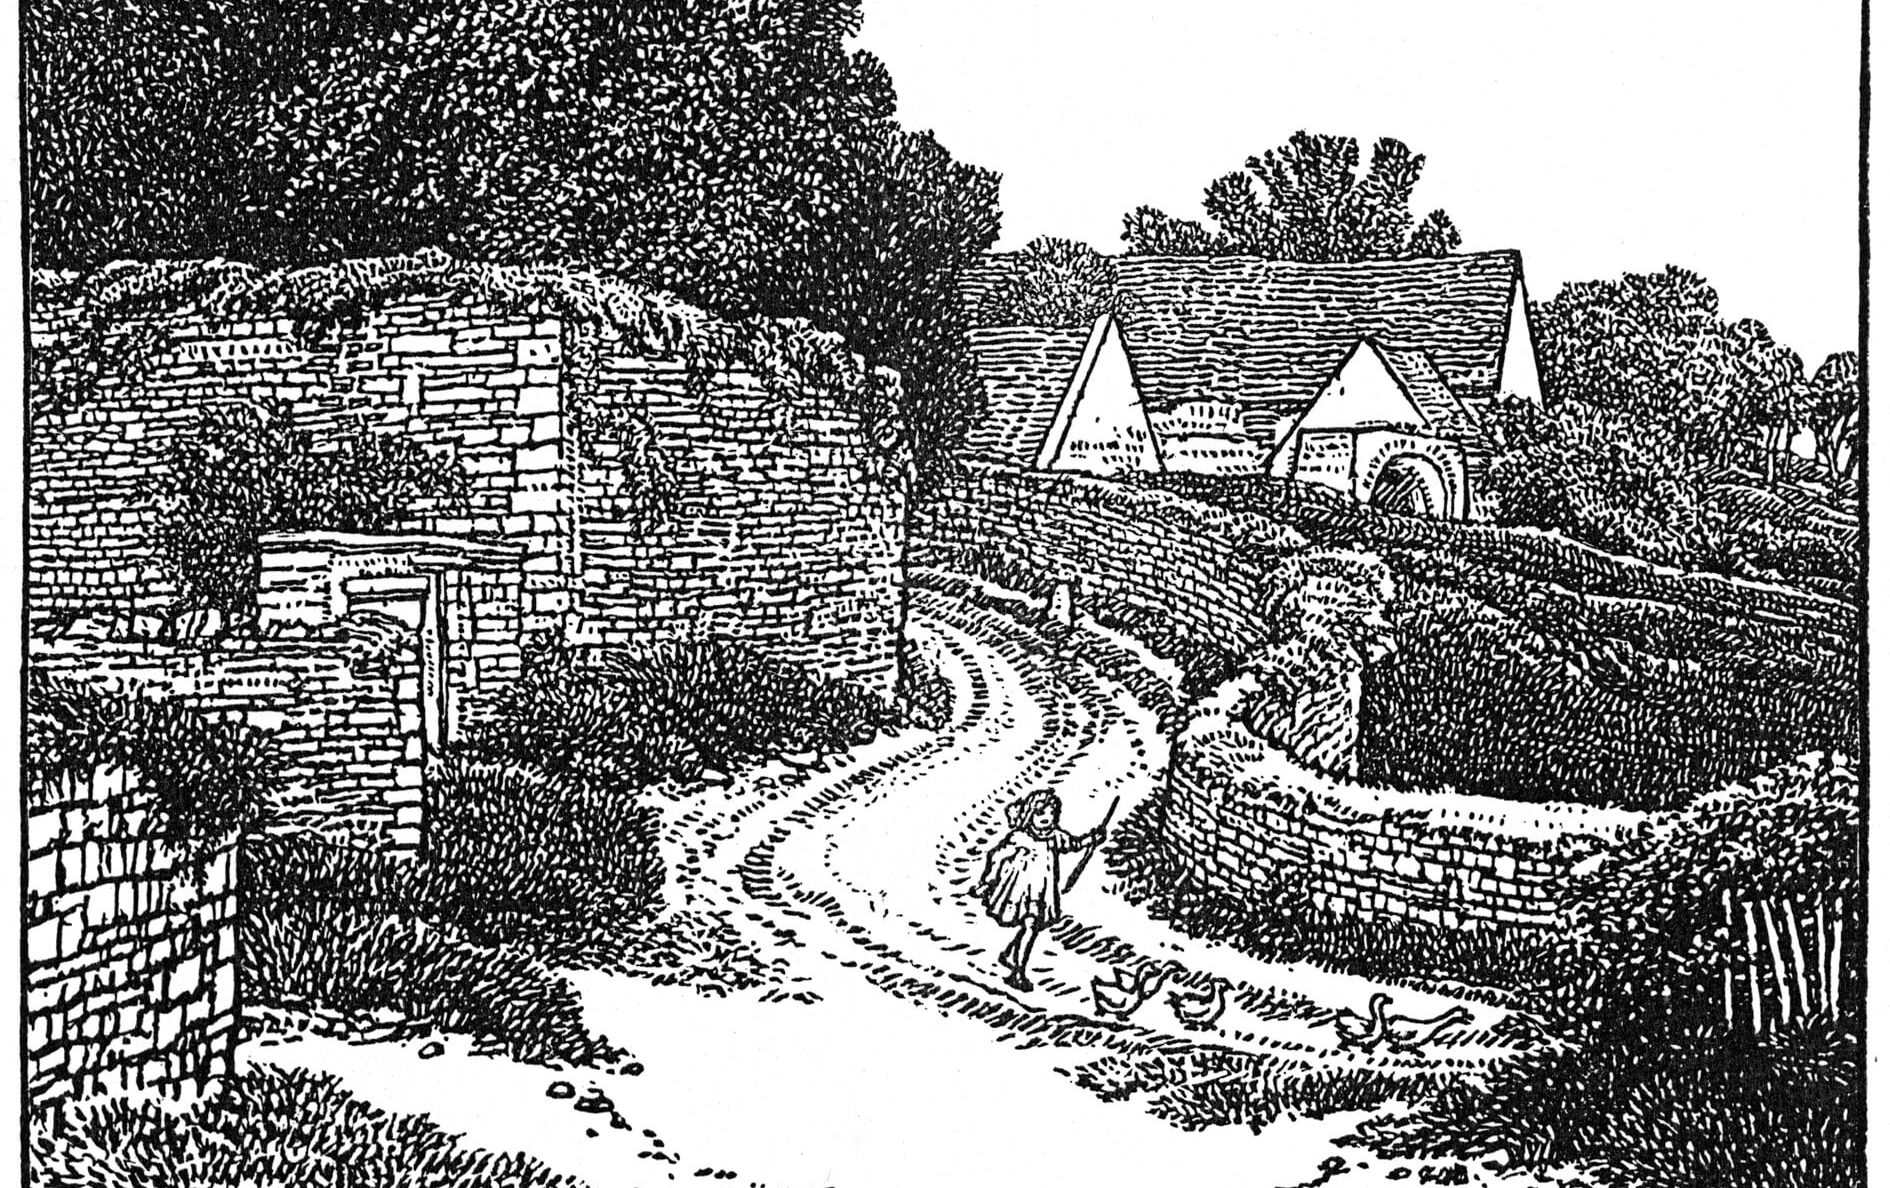 Calf Lane by Griggs